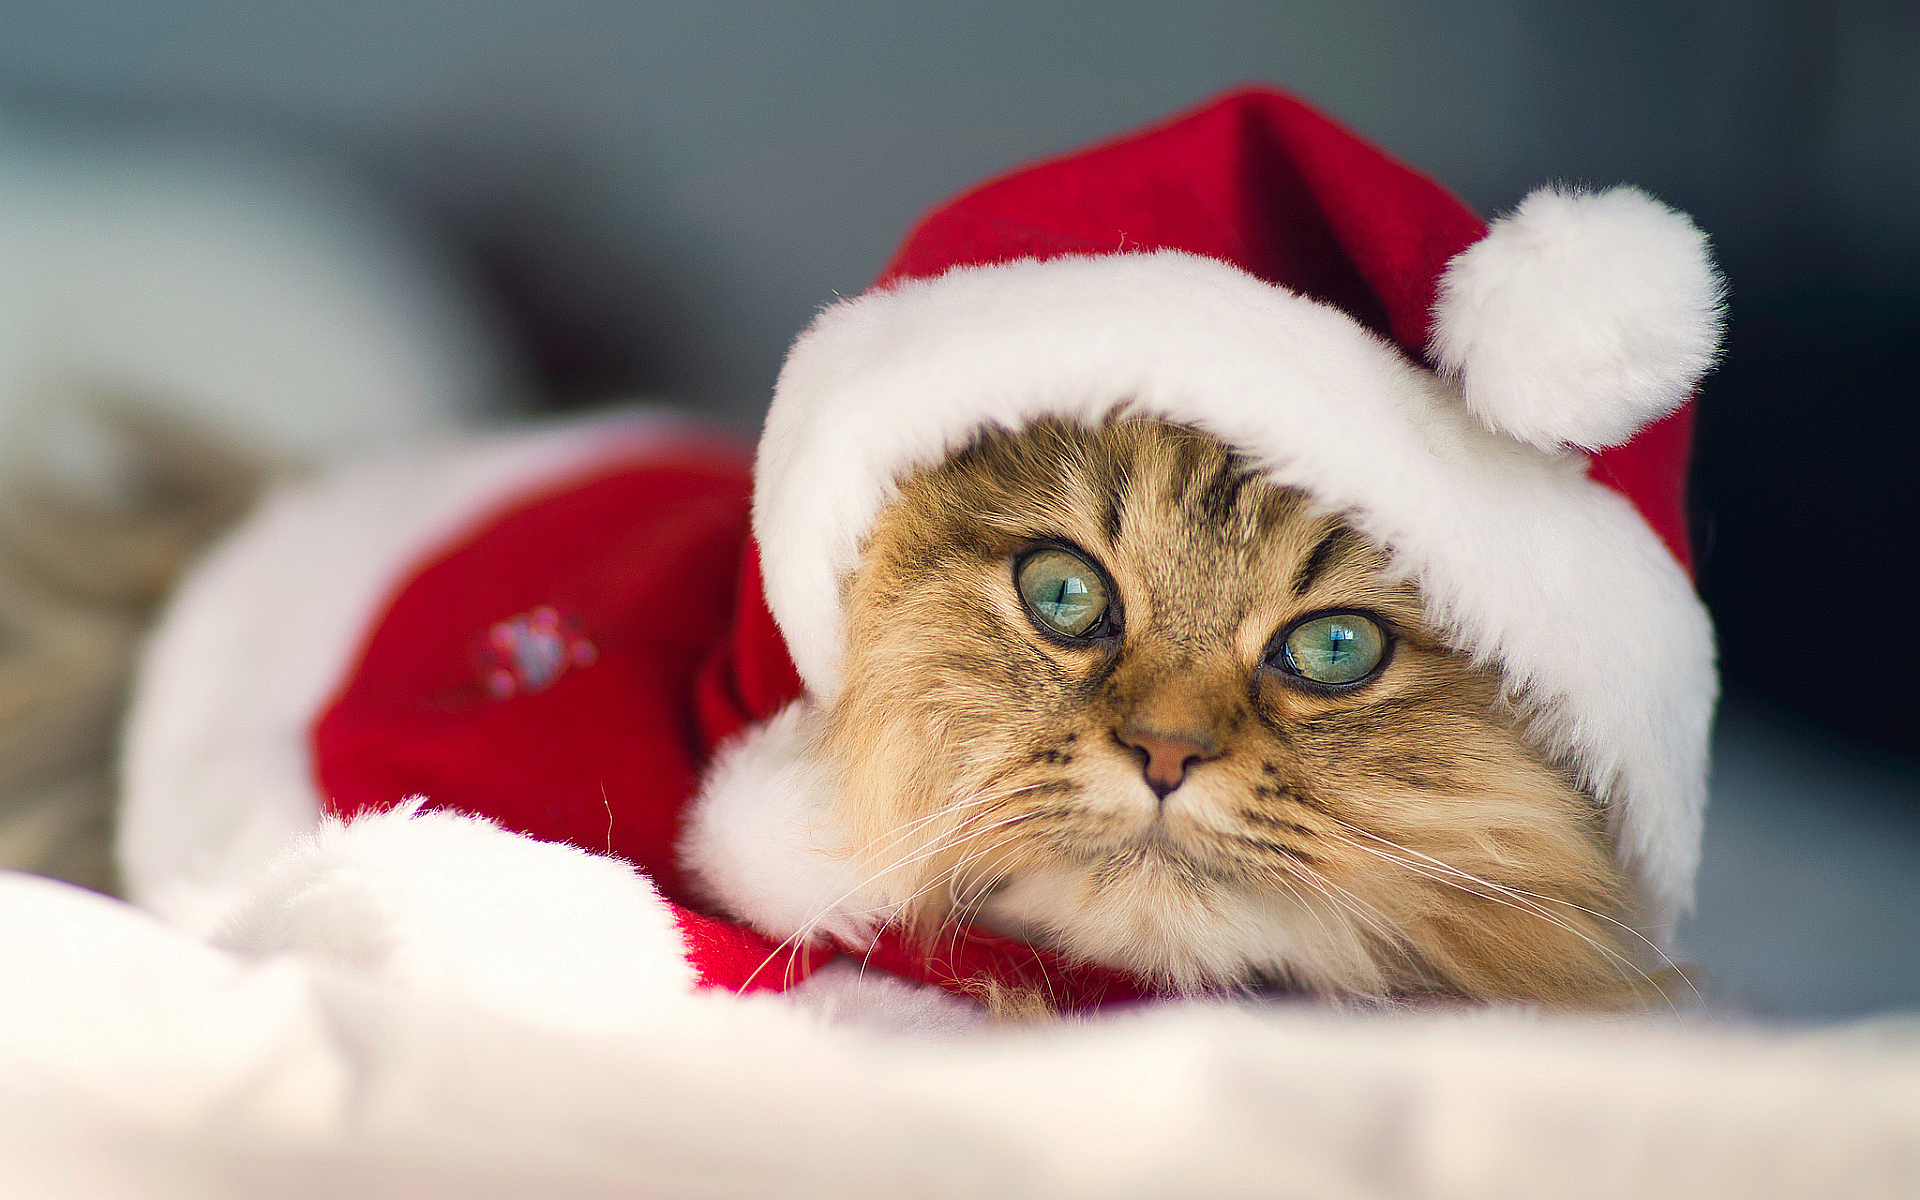 christmas kitty cat picture - HD Desktop Wallpapers | 4k HD